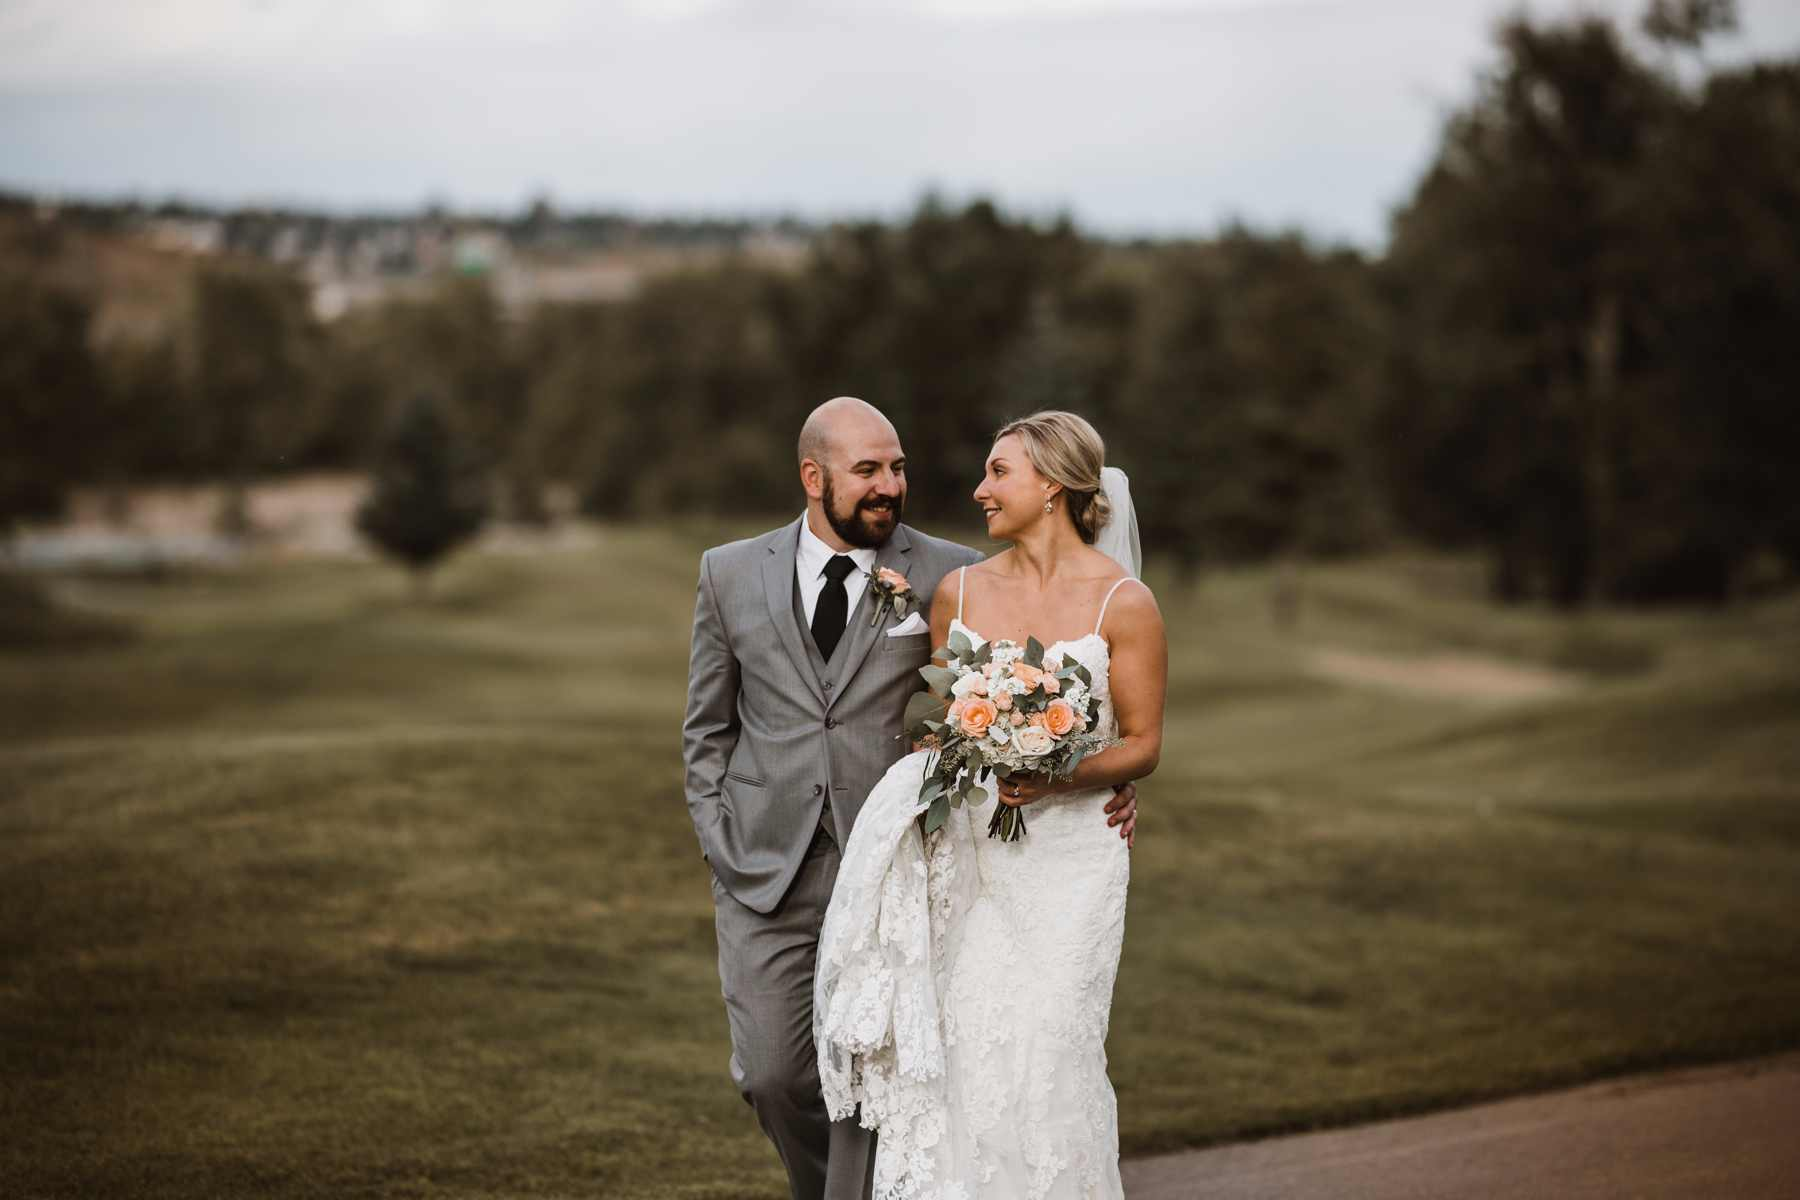 Calgary Wedding Photography at Valley Ridge Golf Club | Film